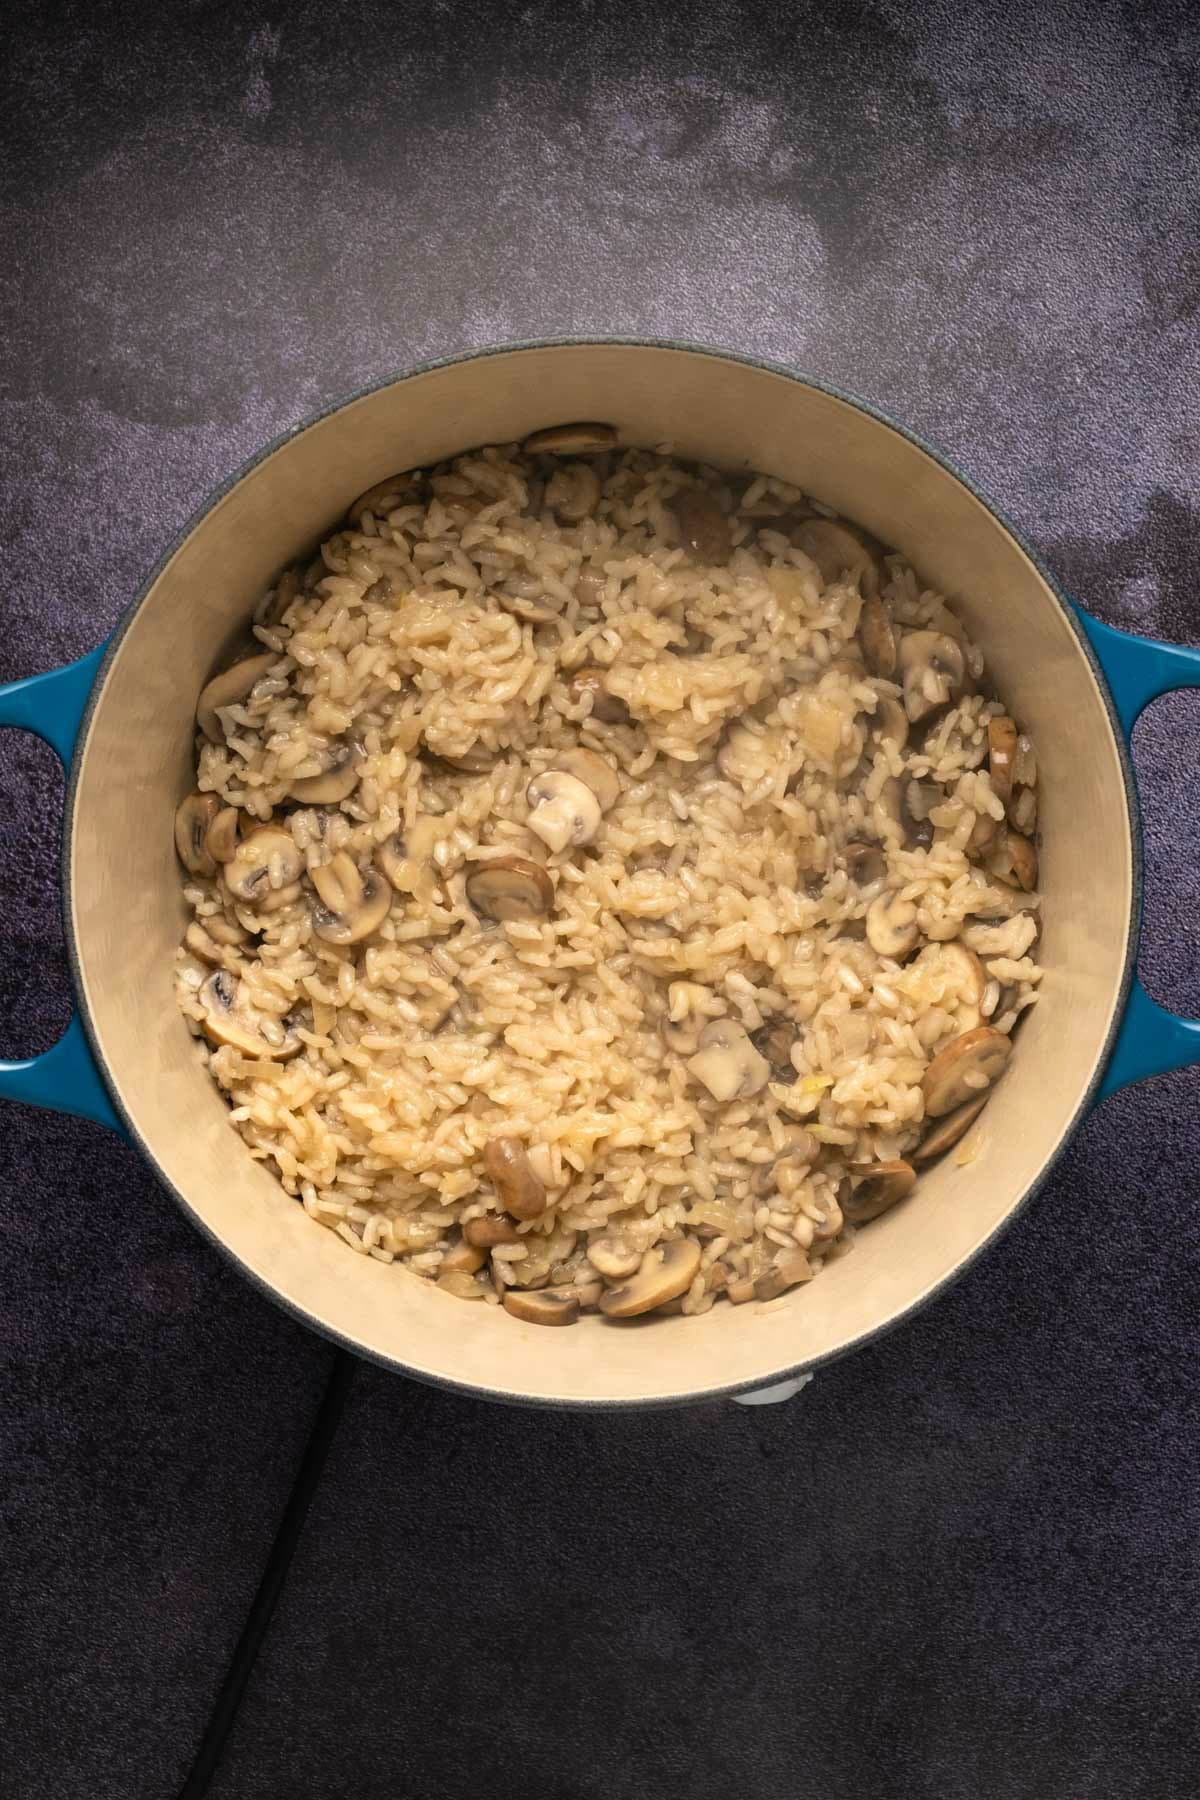 Mushroom risotto cooking in a pot.